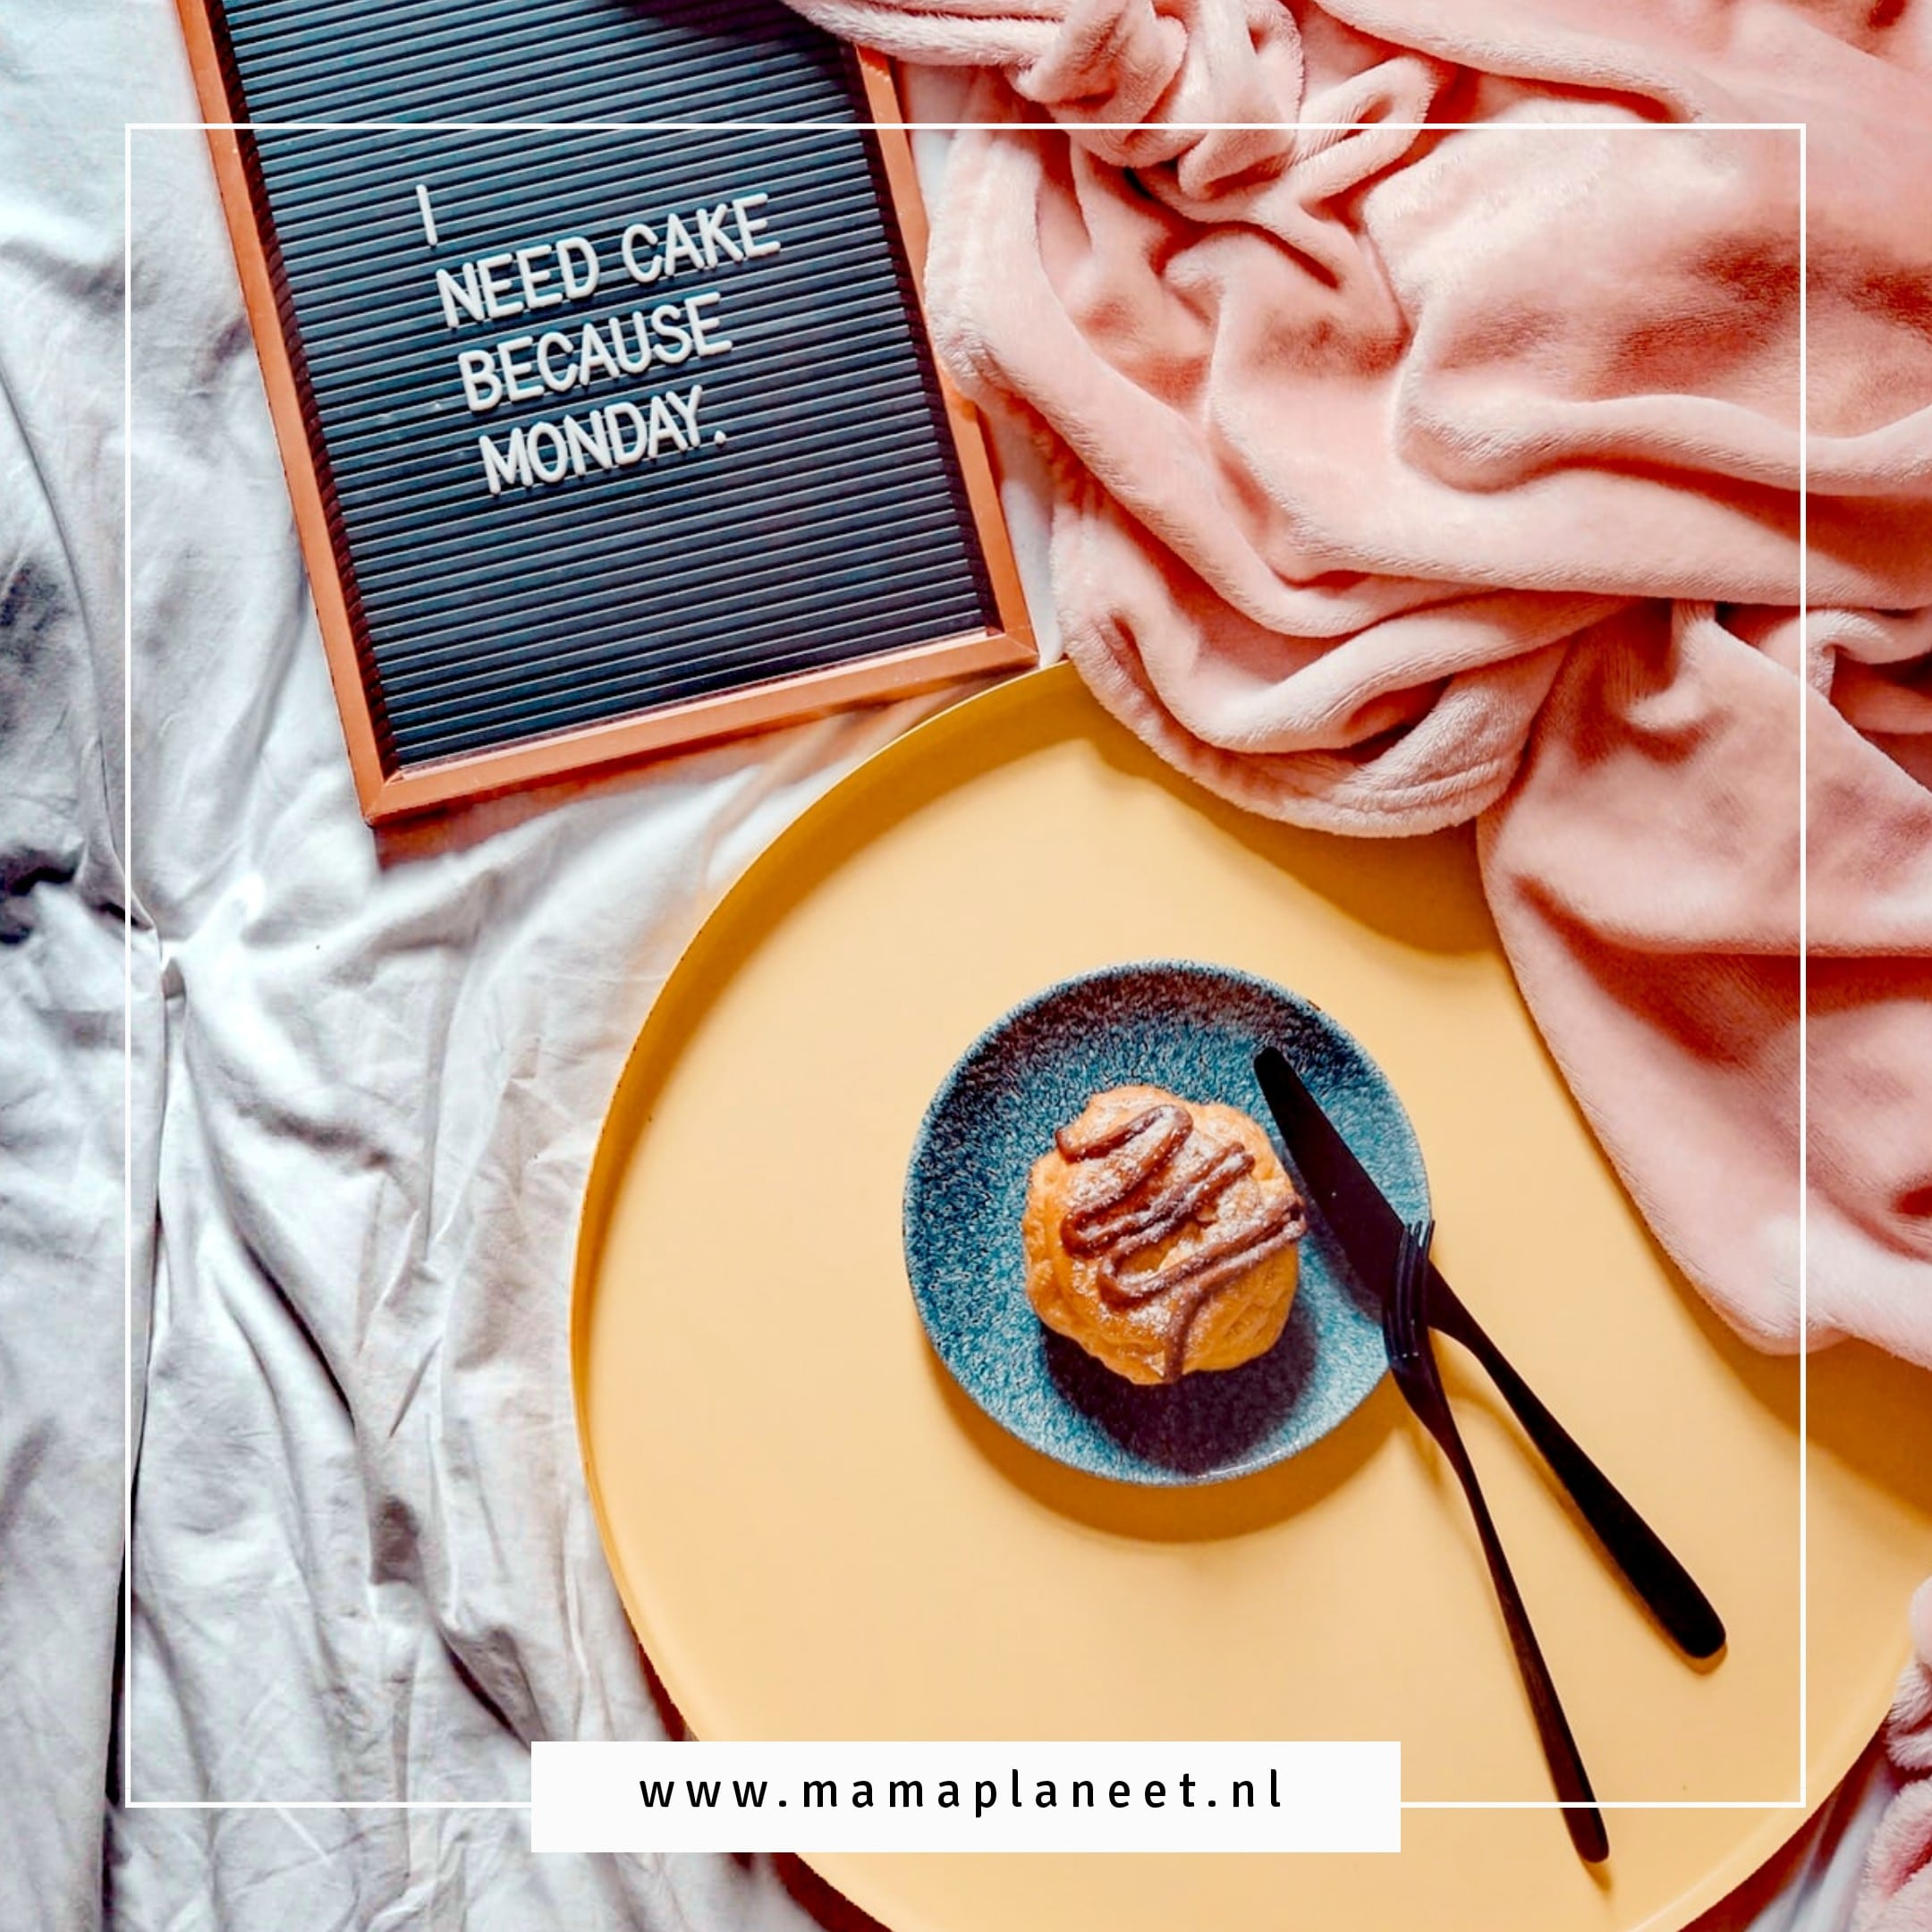 taart op bed met de tekst I need cake because monday vanwege blue monday